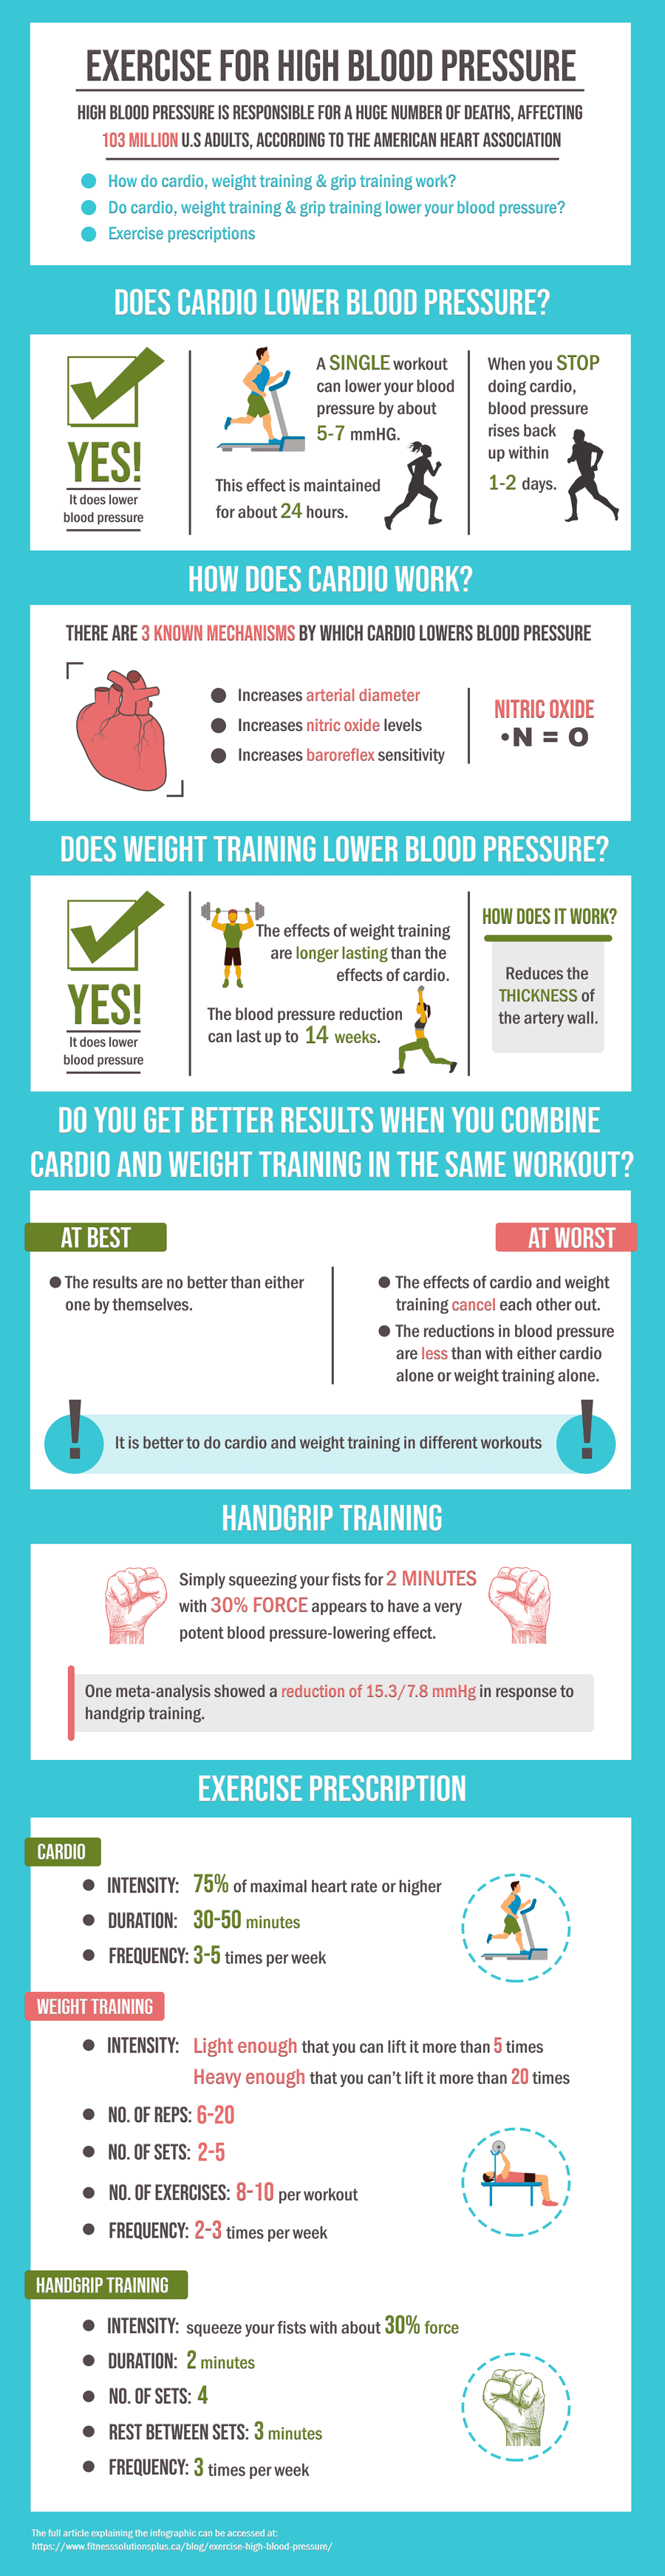 Exercise For High Blood Pressure Infographic